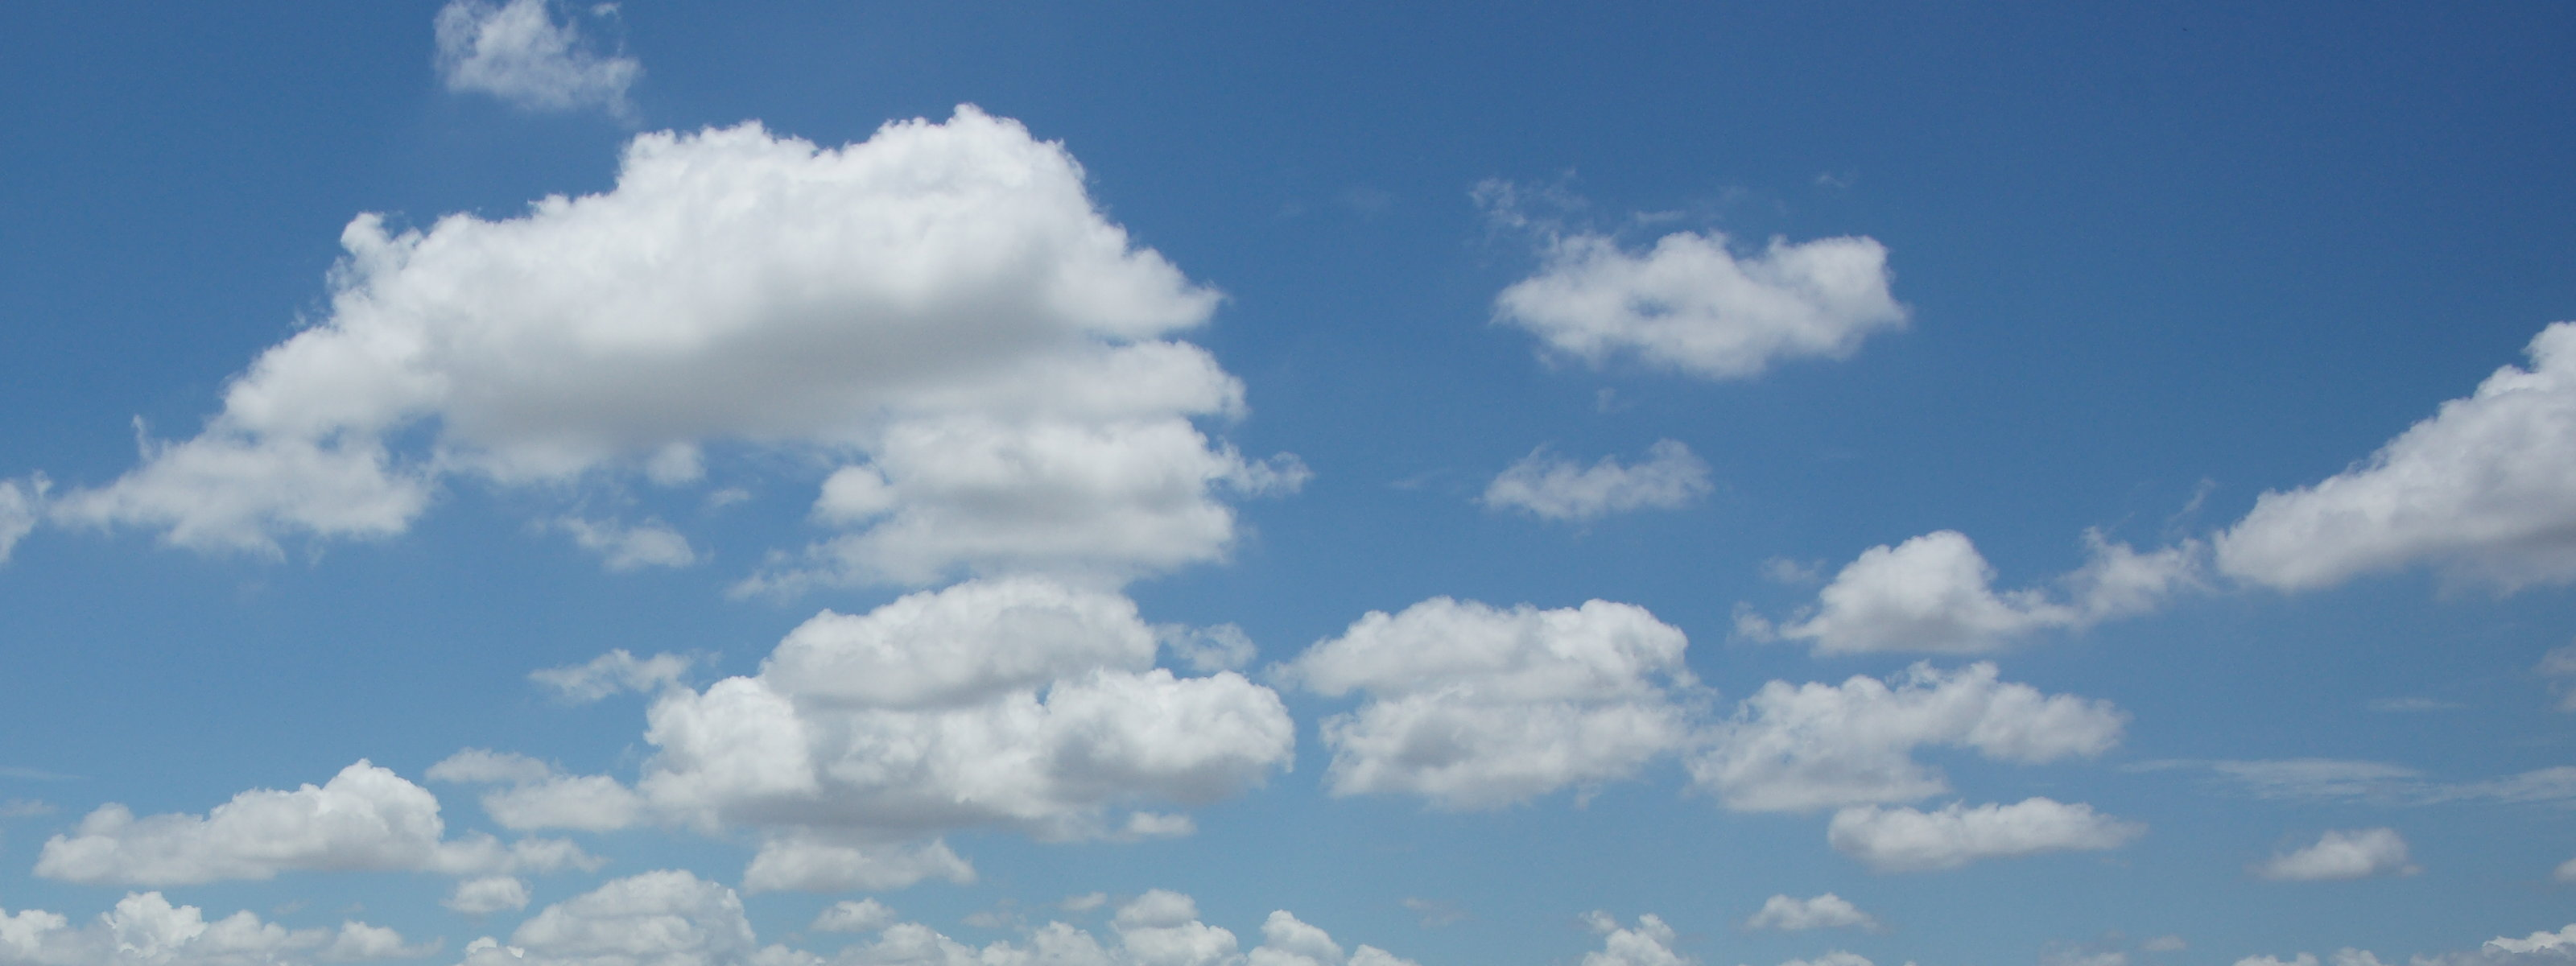 Top Clouds And Blue Sky Wallpapers 3200x1200